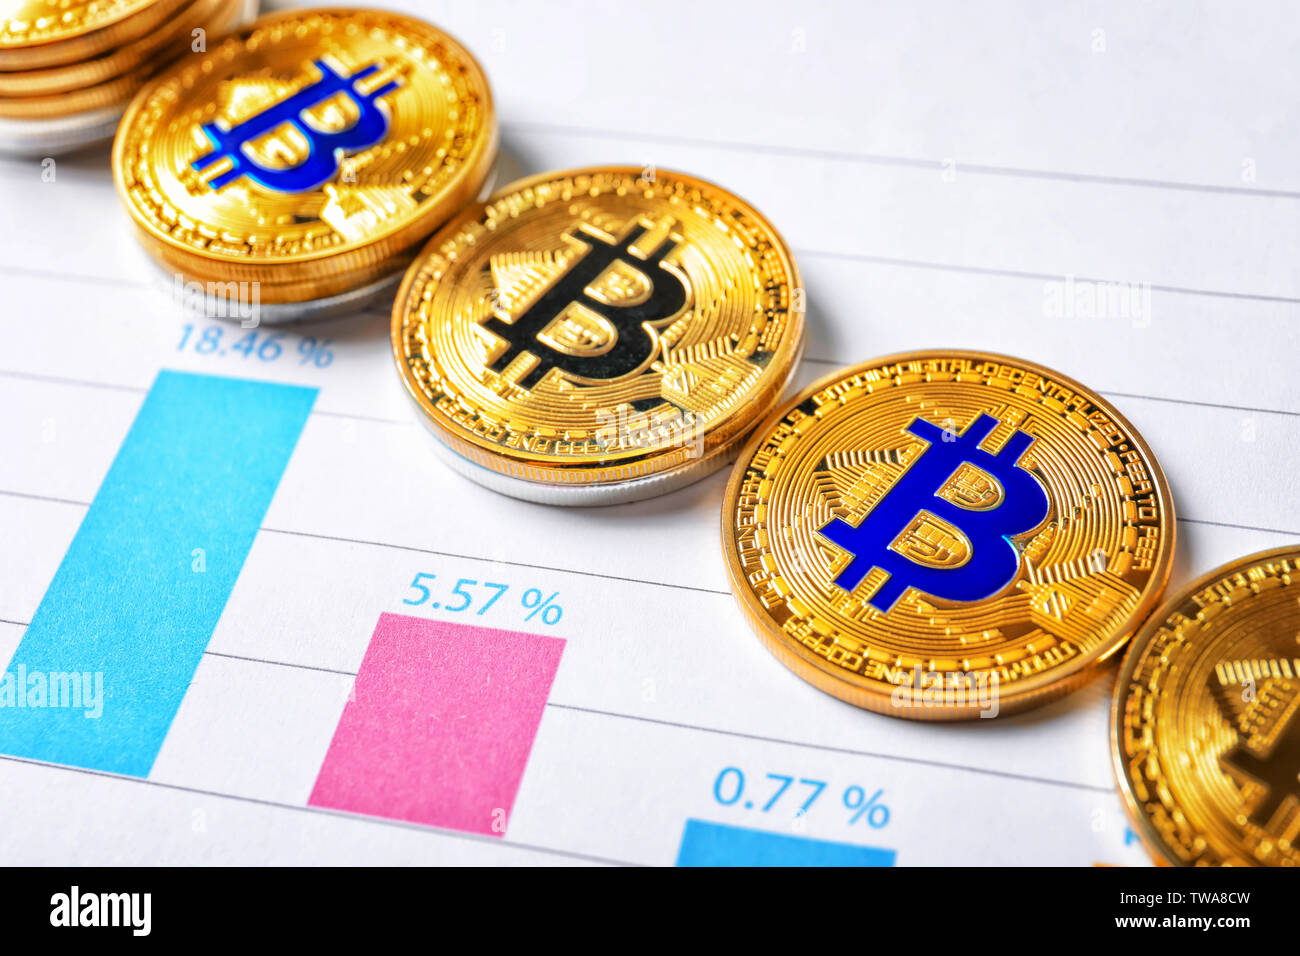 Golden bitcoins on chart. Finance trading - Stock Image